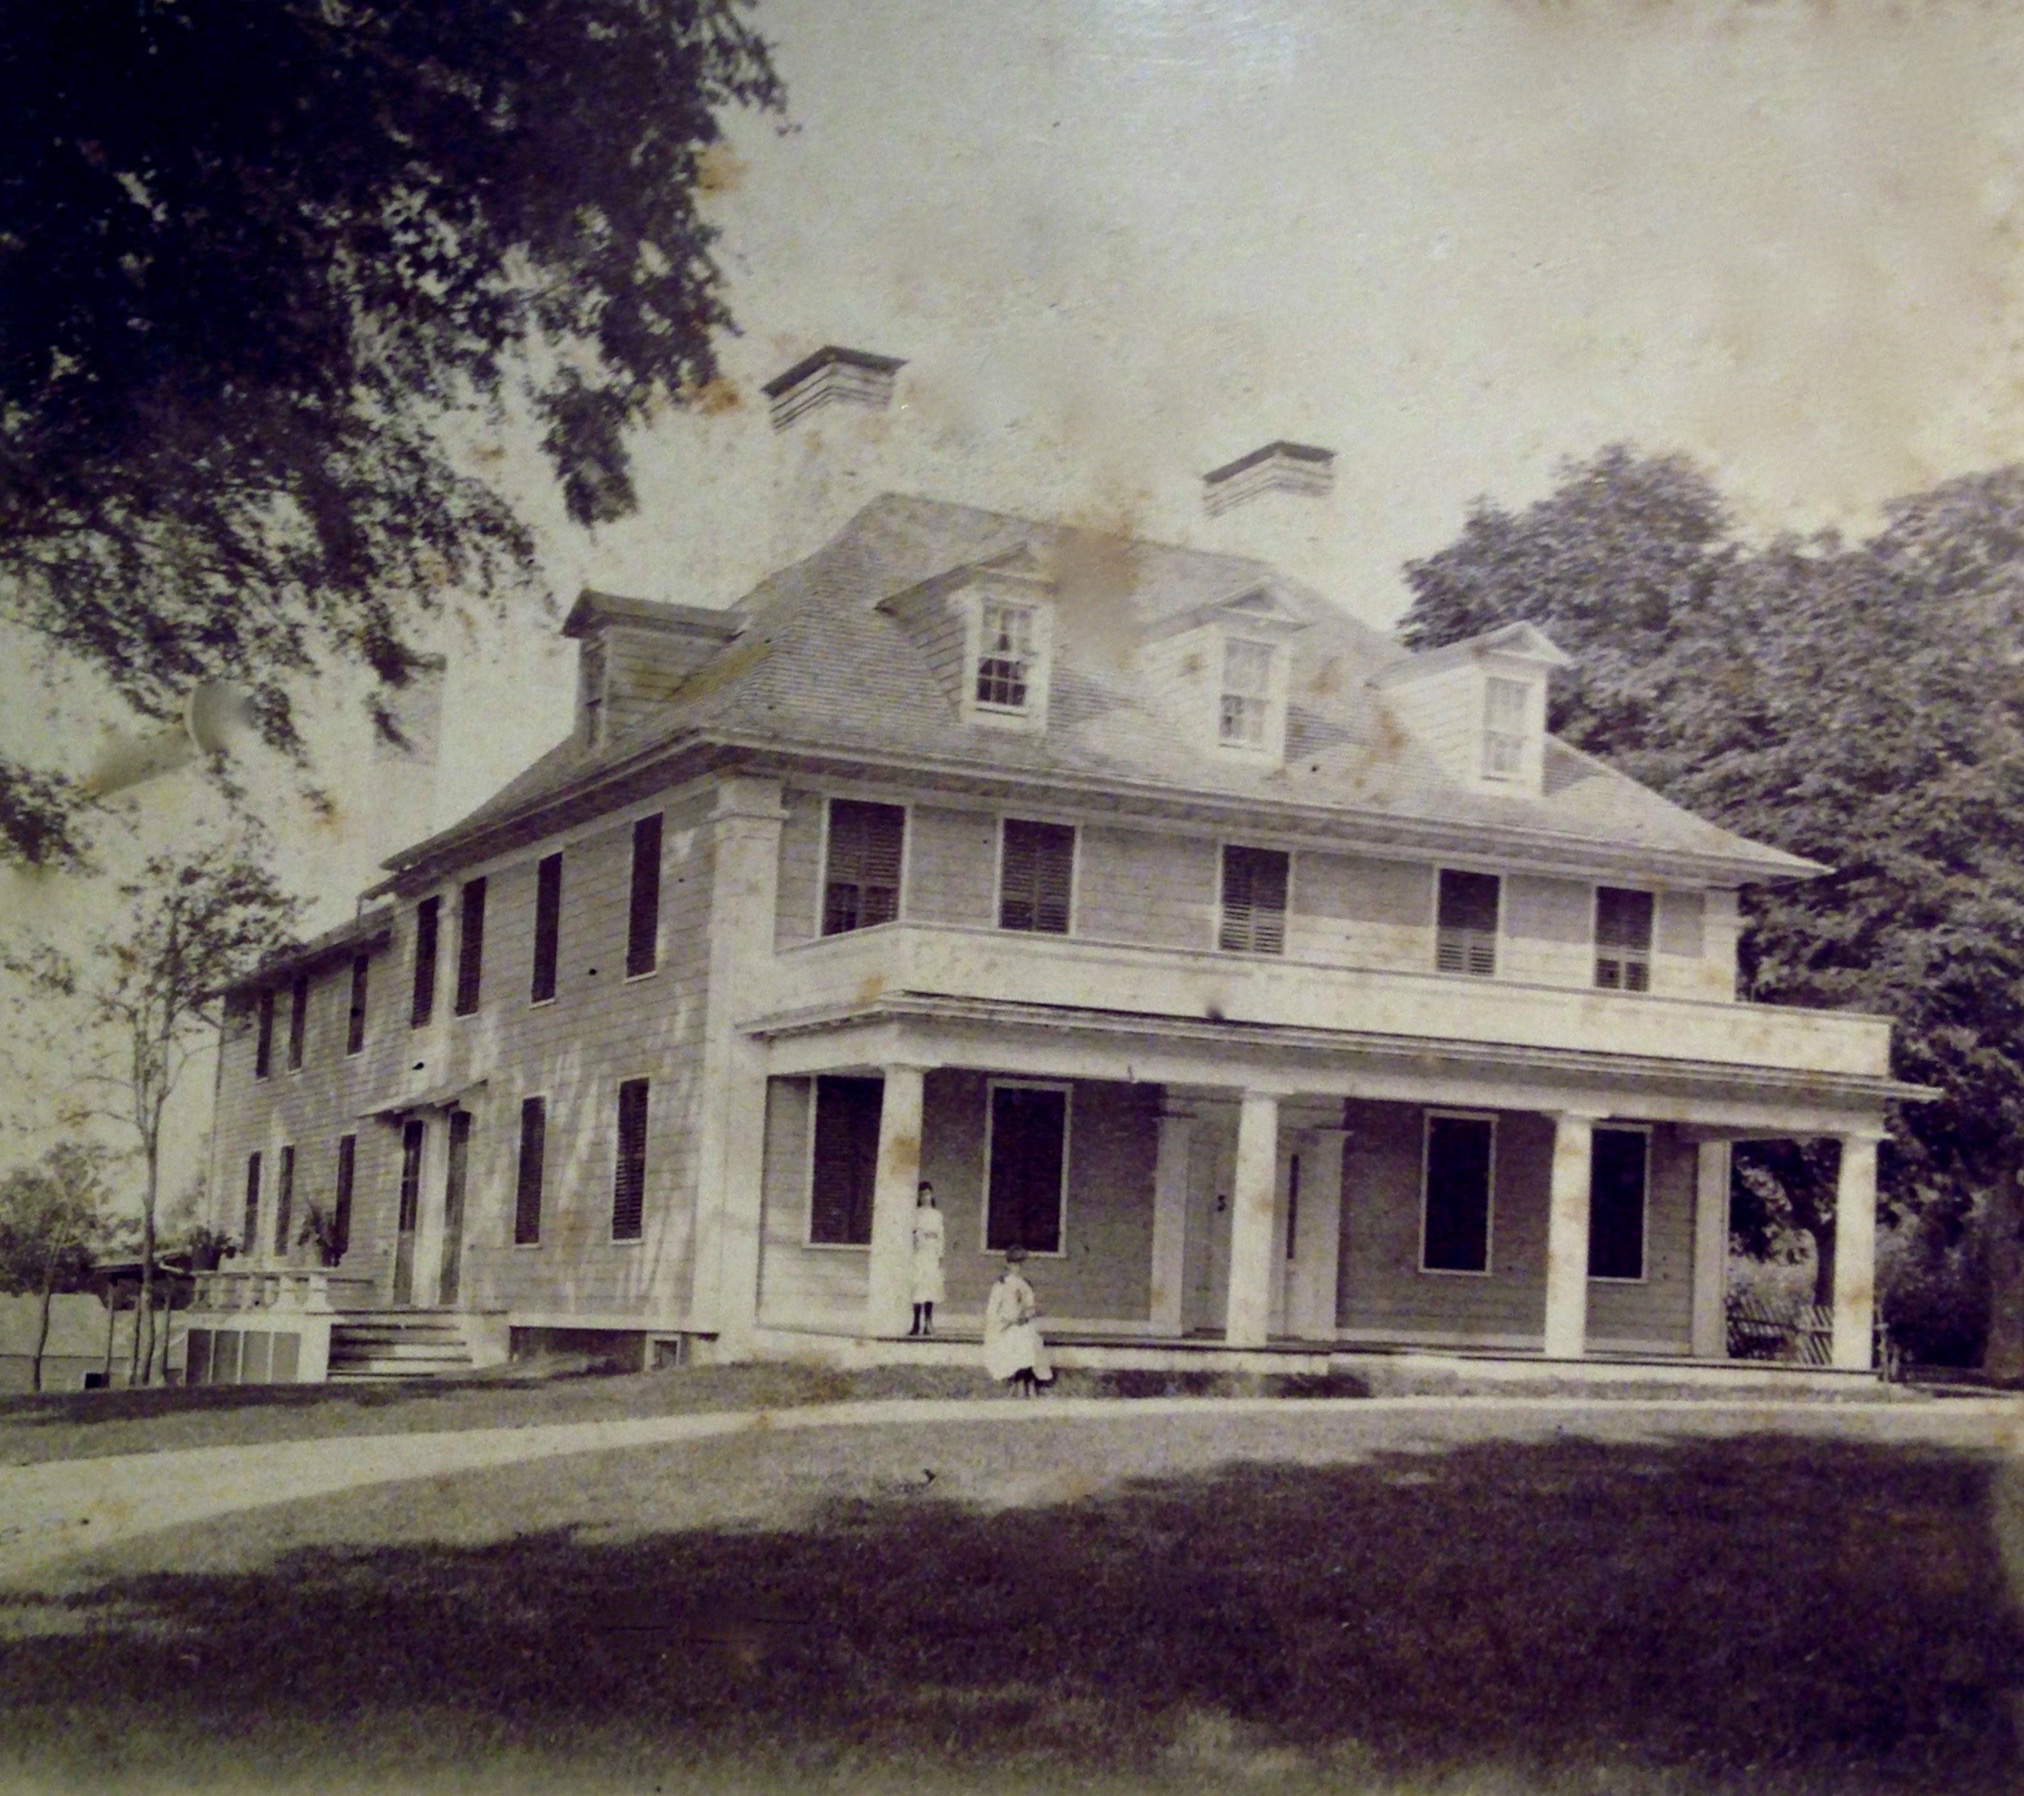 18th Century photograph of the Sylvester Manor